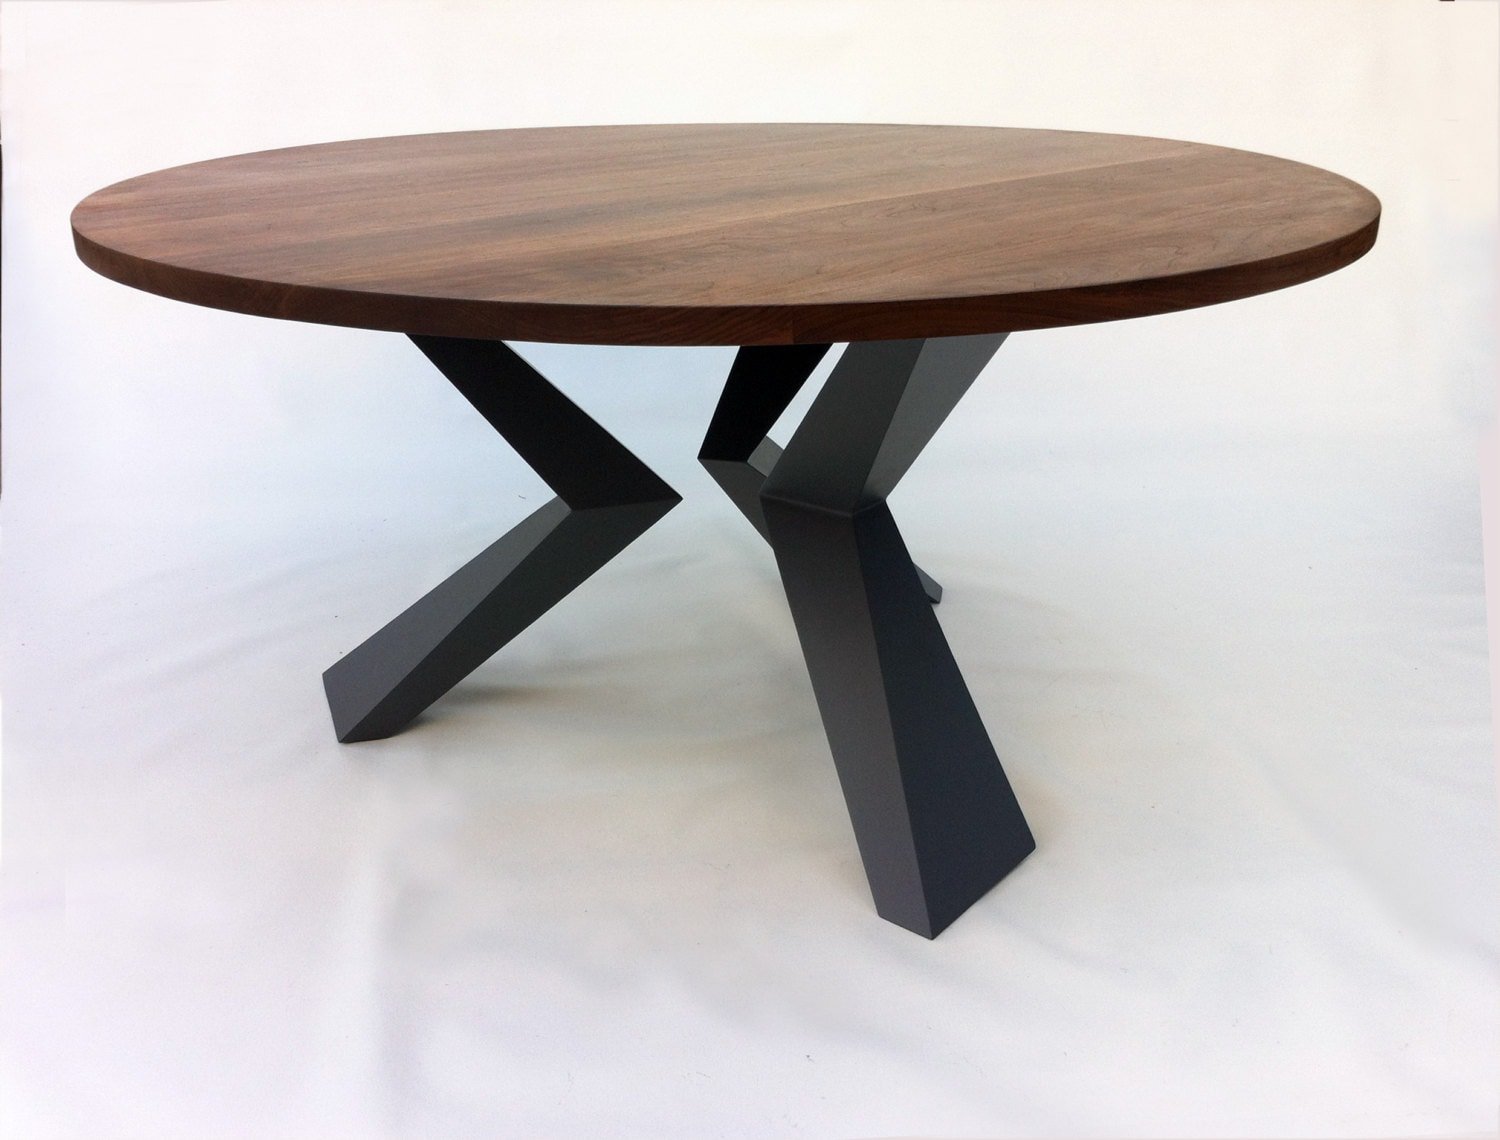 Modern 60 round bird leg dining table seats 8 for Modern round dining table